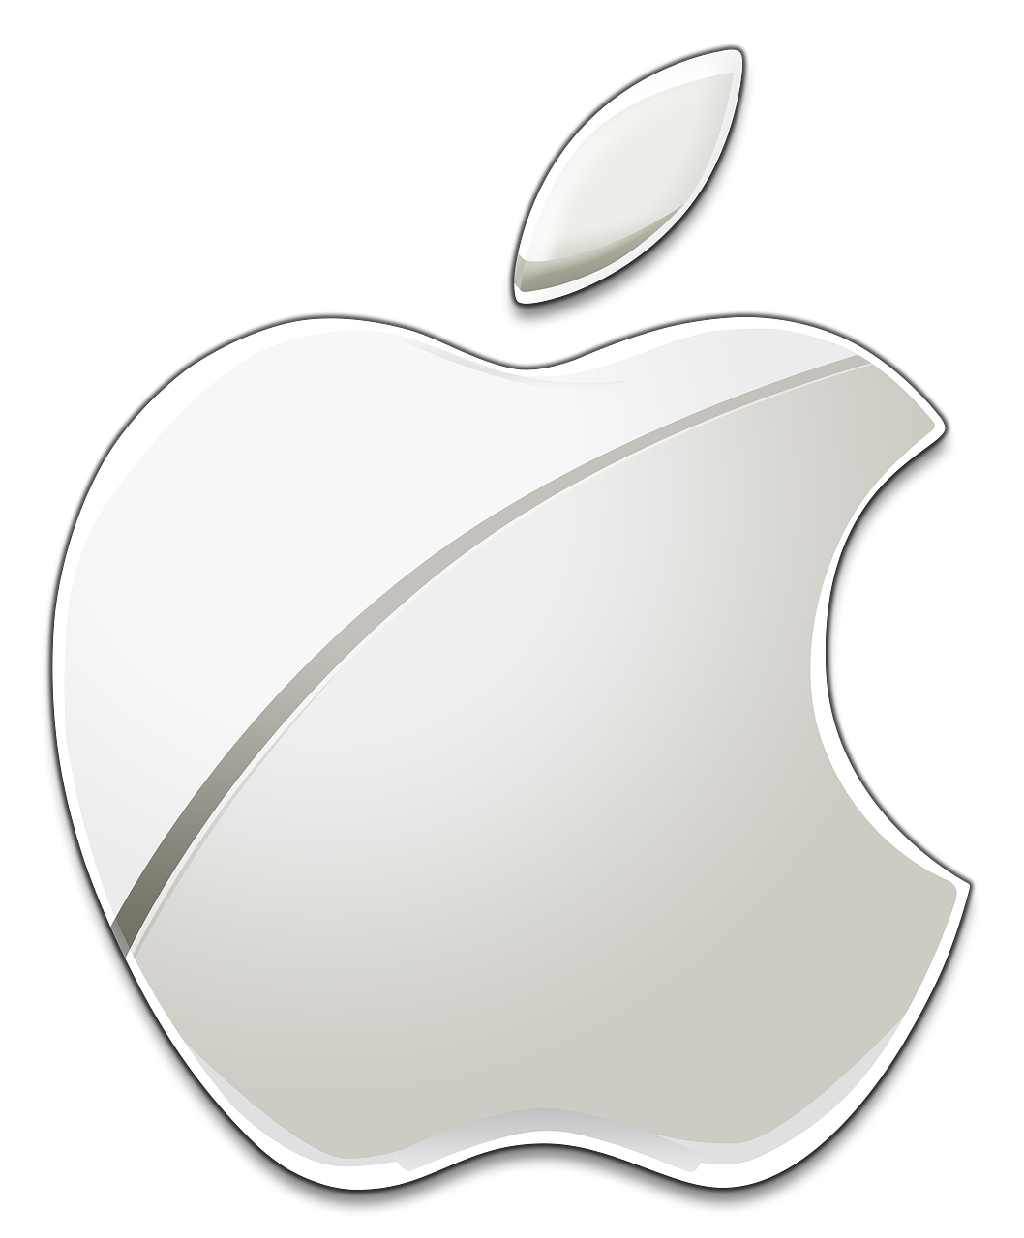 company logo brand apple ios logo png transparent apple ios logo images #32530